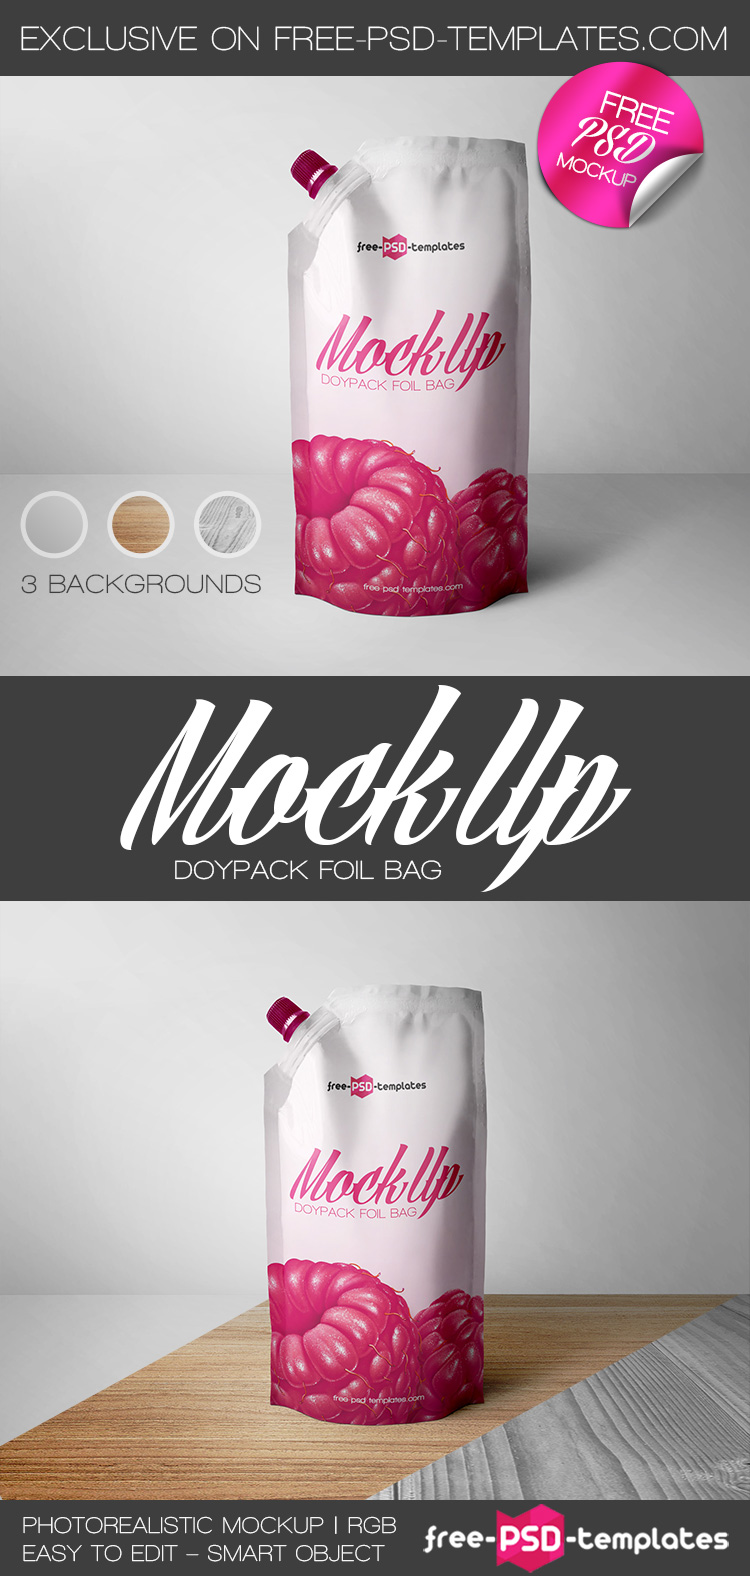 Bigpreview_free-doypack-foil-bag-mock-up-in-psd